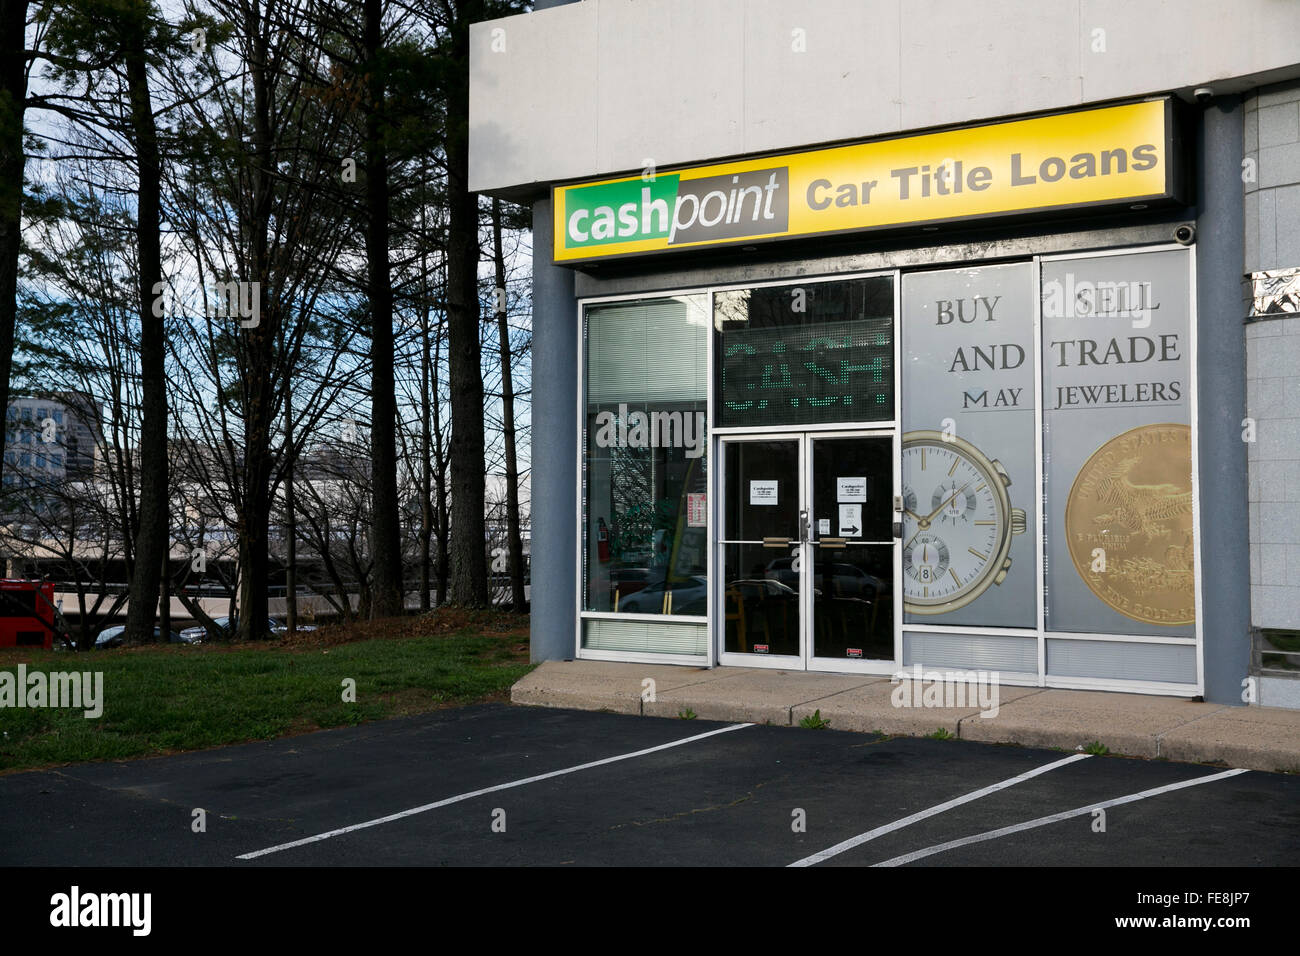 A logo sign outside of a CashPoint car title loan office in Tysons, Virginia on January 1, 2016. - Stock Image